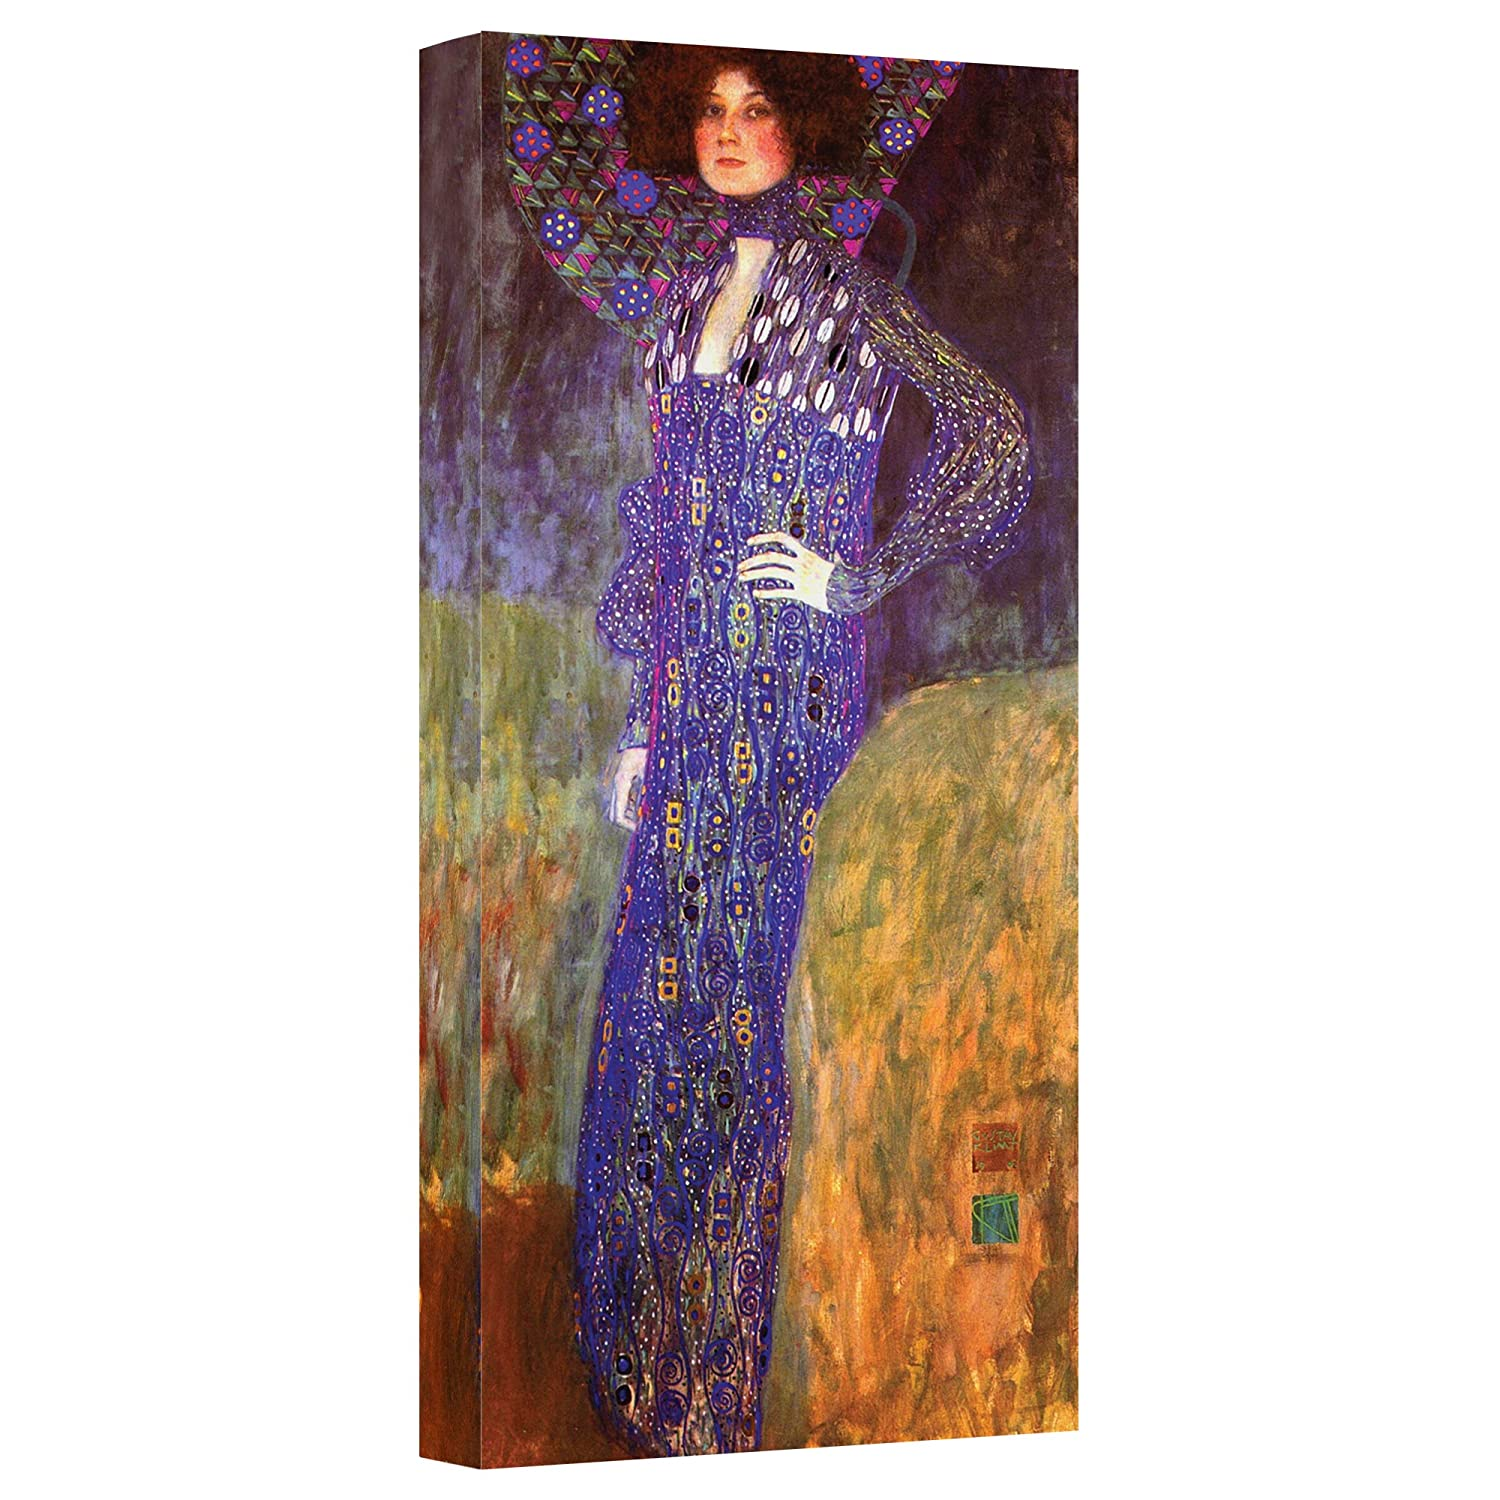 16 by 36-Inch The Art Wall Gklimt19-16x36-w ArtWall Emilie Floege Gallery Wrapped Canvas by Gustav Klimt